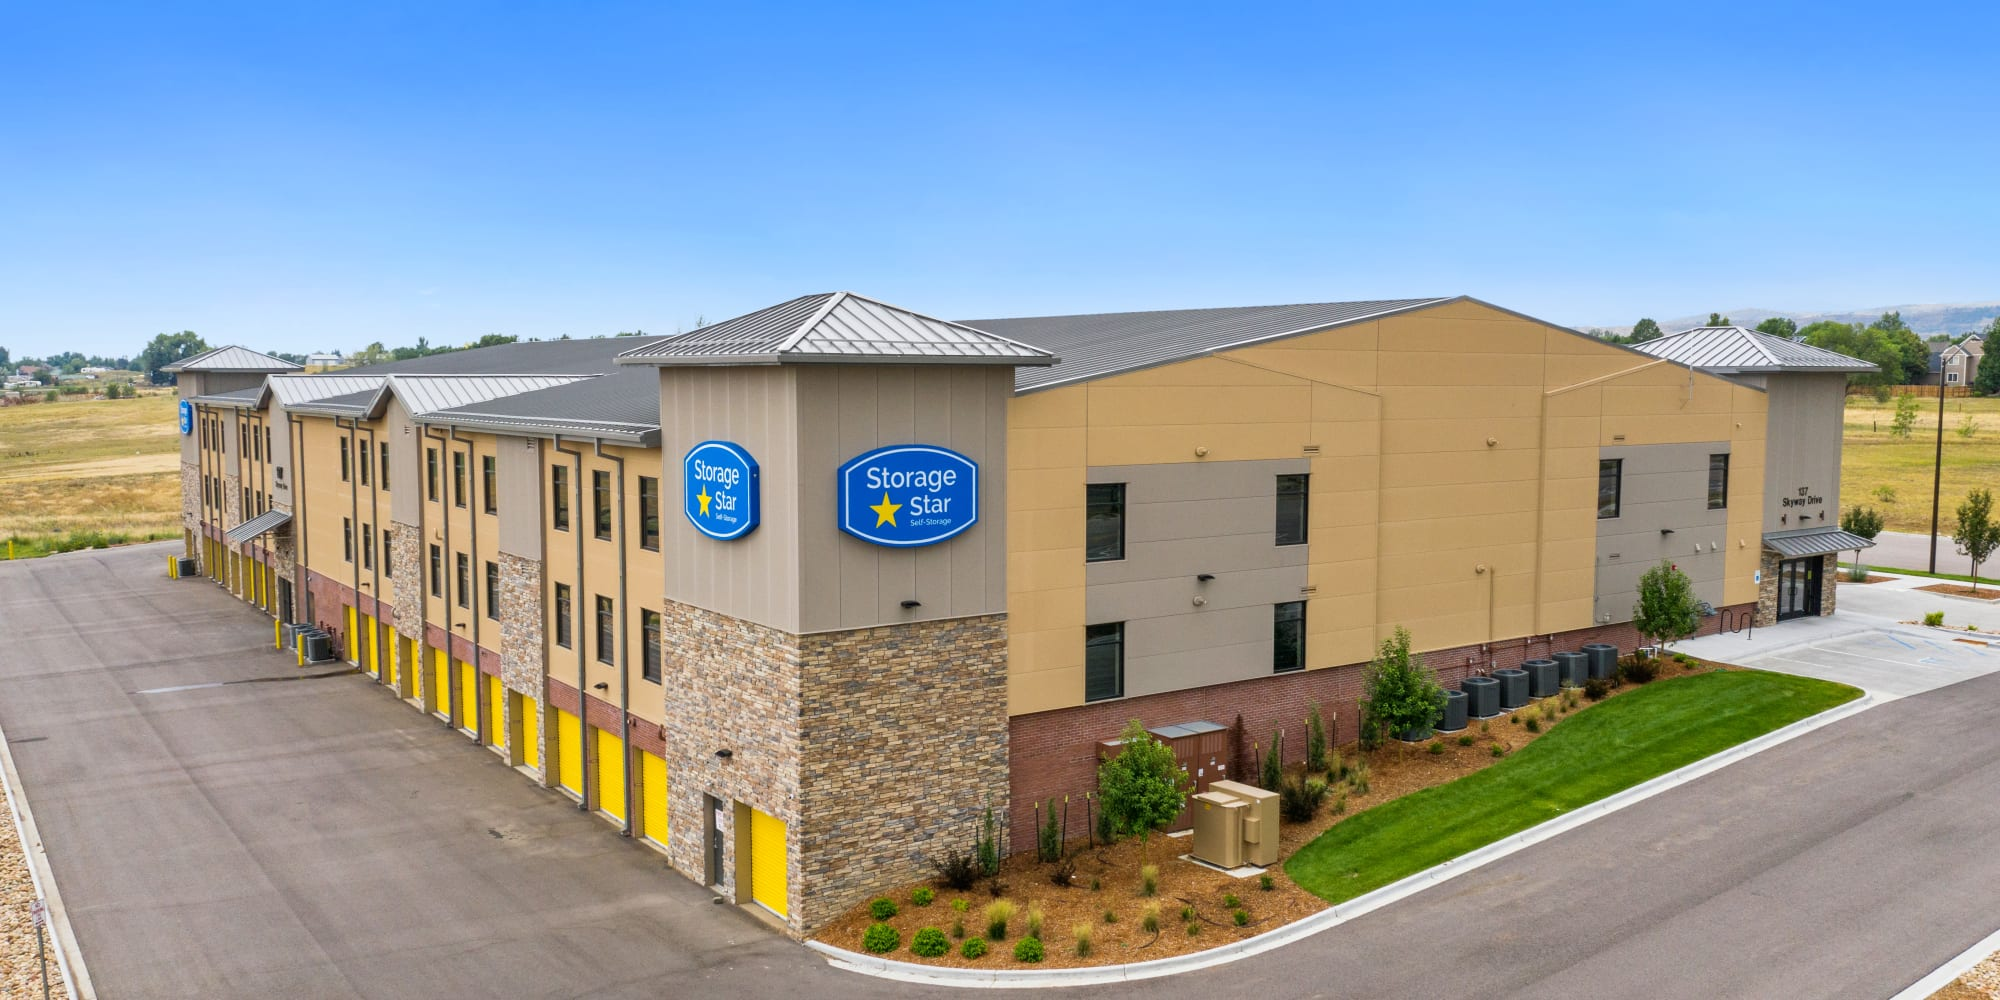 Self storage at Storage Star South College in Fort Collins Colorado